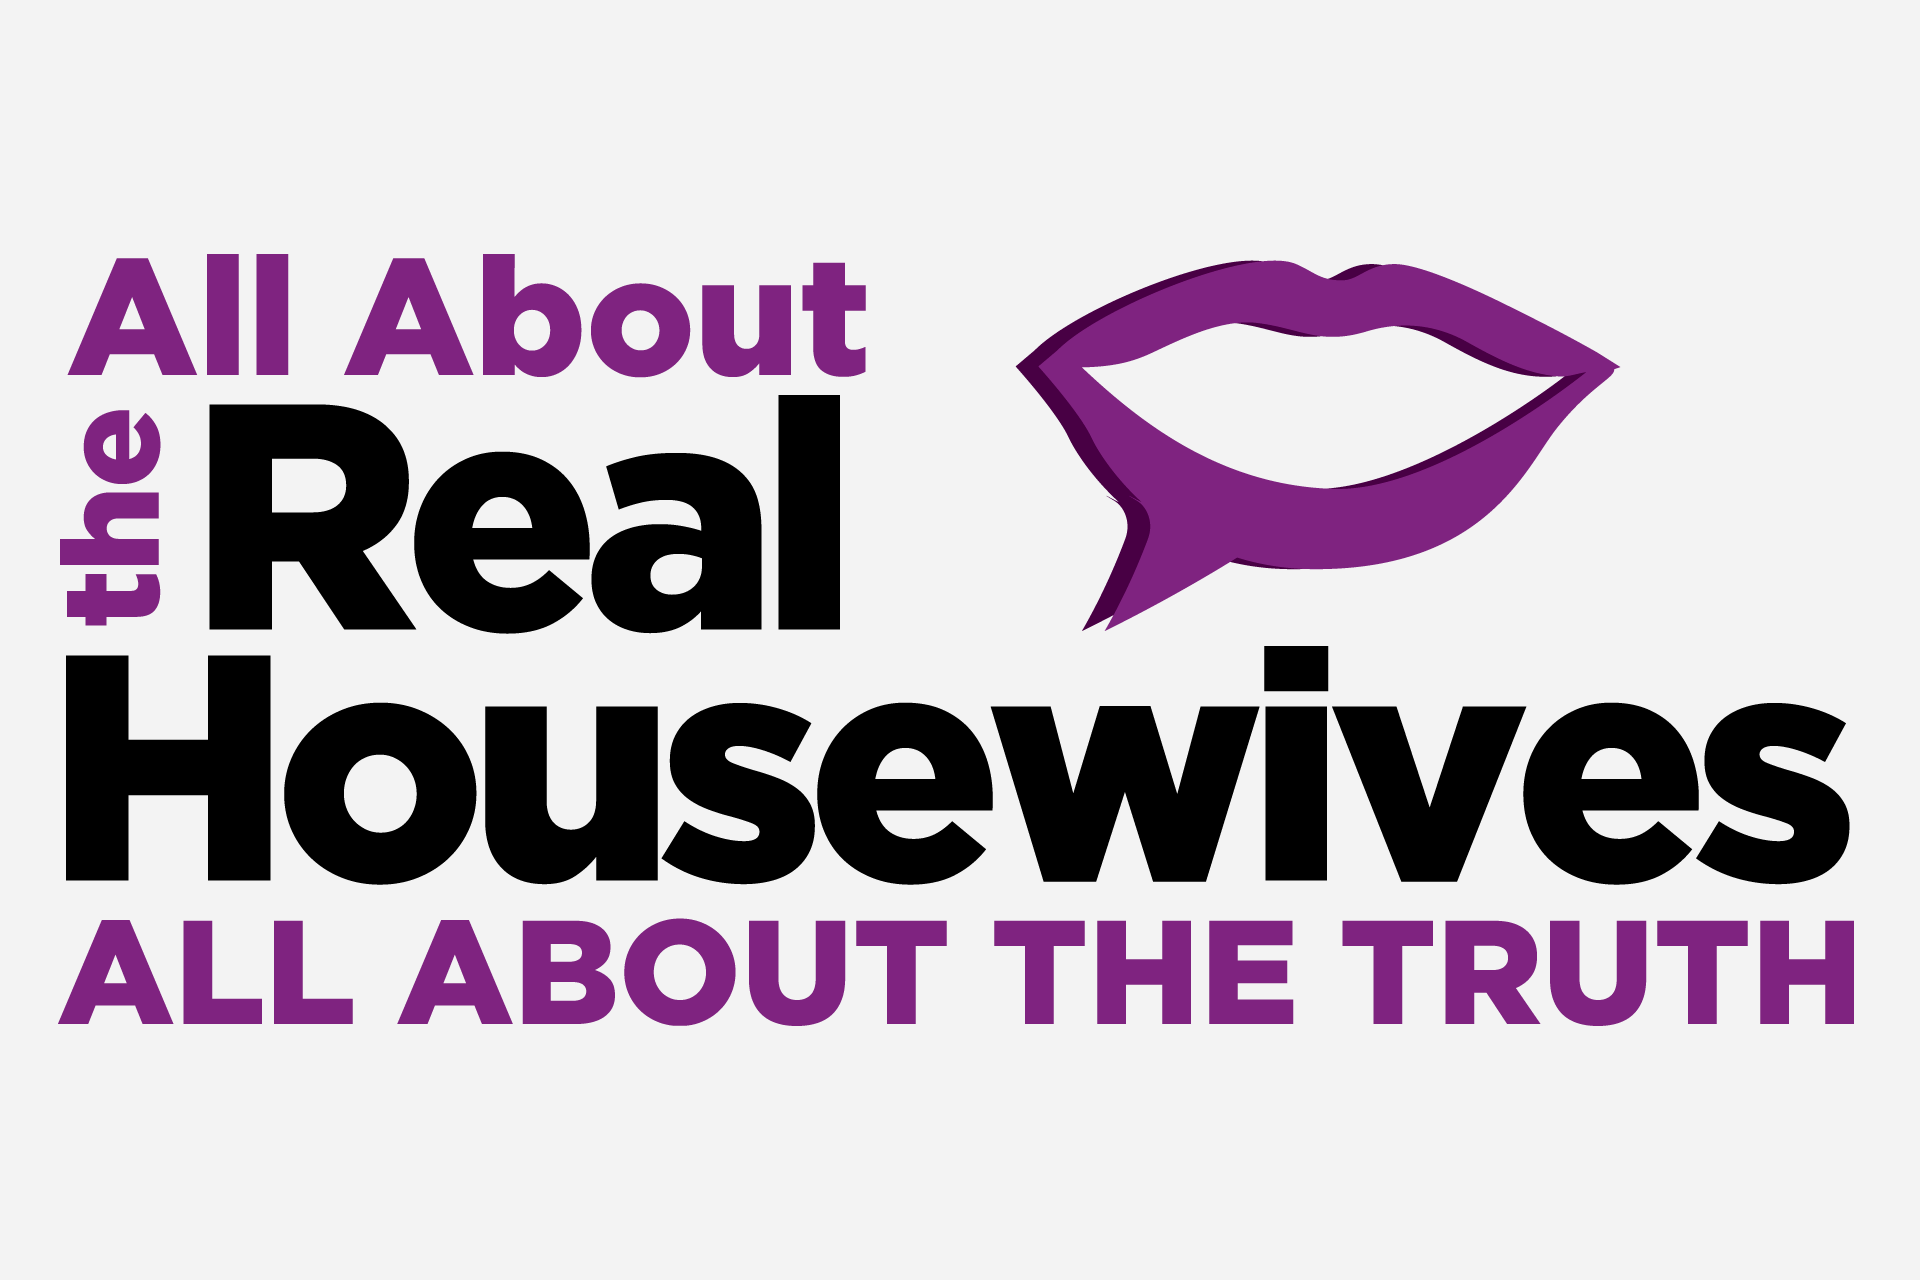 Shannon Beador Reveals That She and David DON'T TALK! Plus Dishes On Season 13 of RHOC!